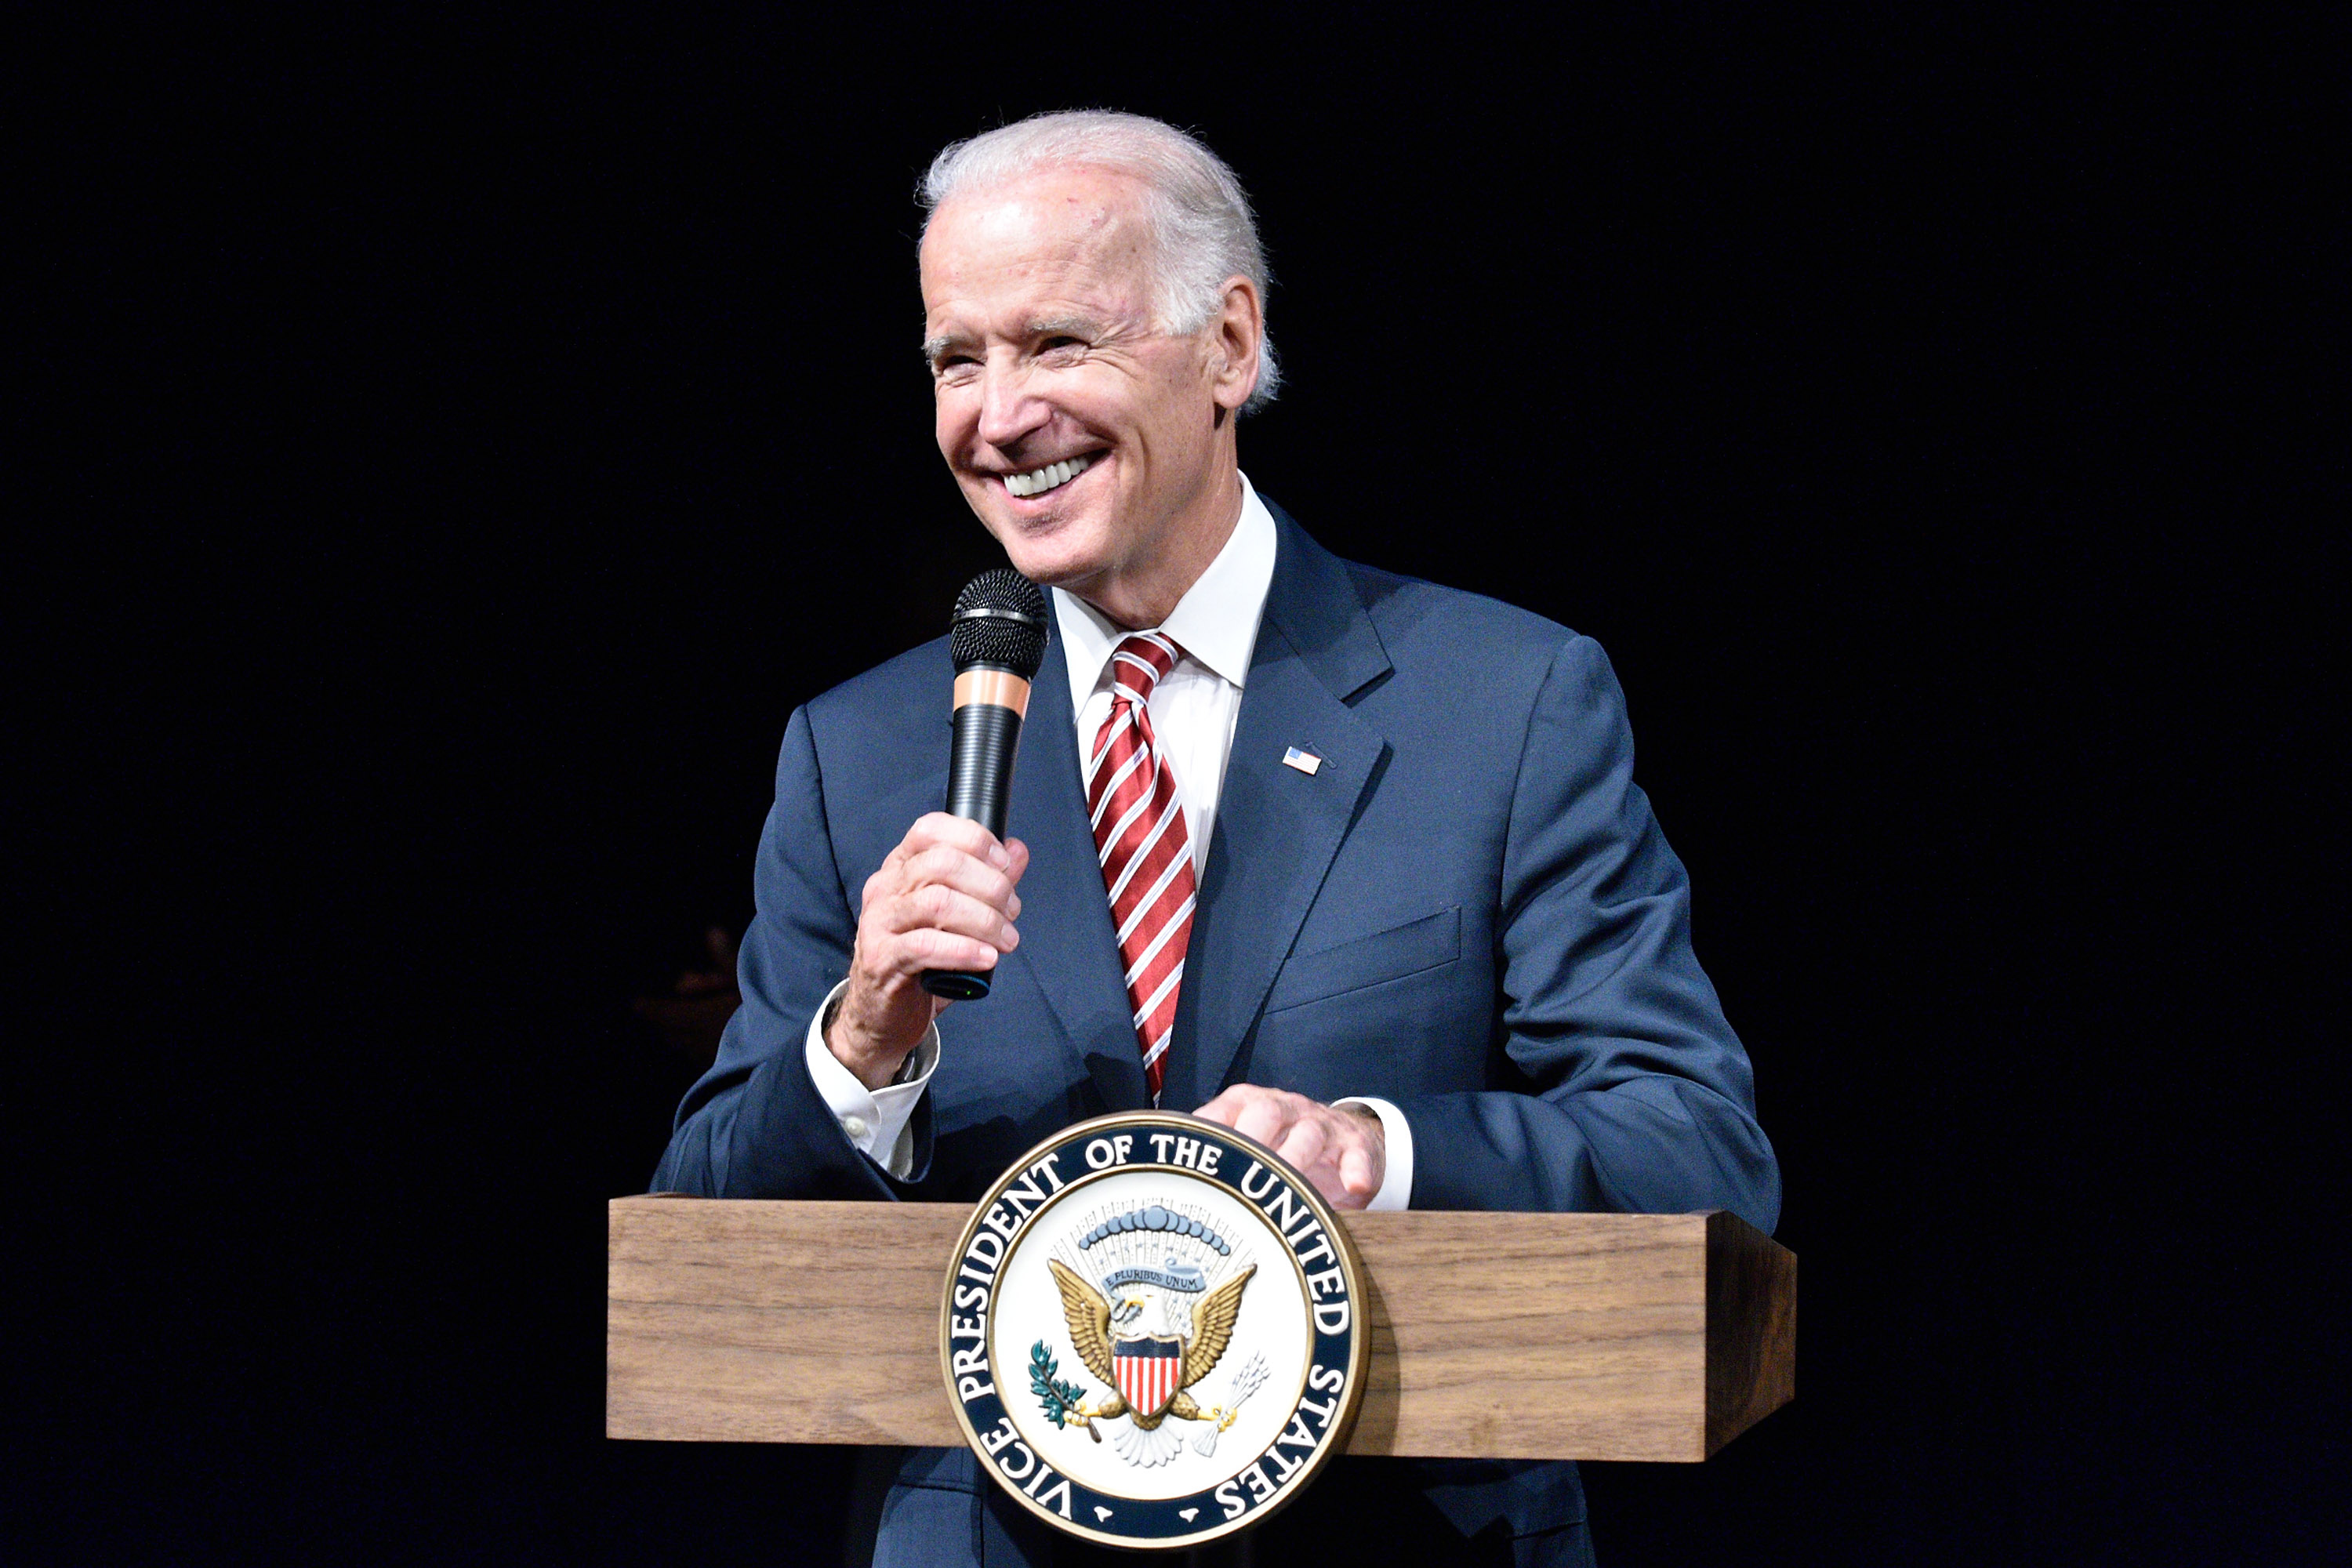 Vice President Joe Biden speaks at the CBC Spouses 17th Annual Celebration of Leadership in Fine Arts at the Nuseum Museum on September 24, 2014 in Washington, D.C.